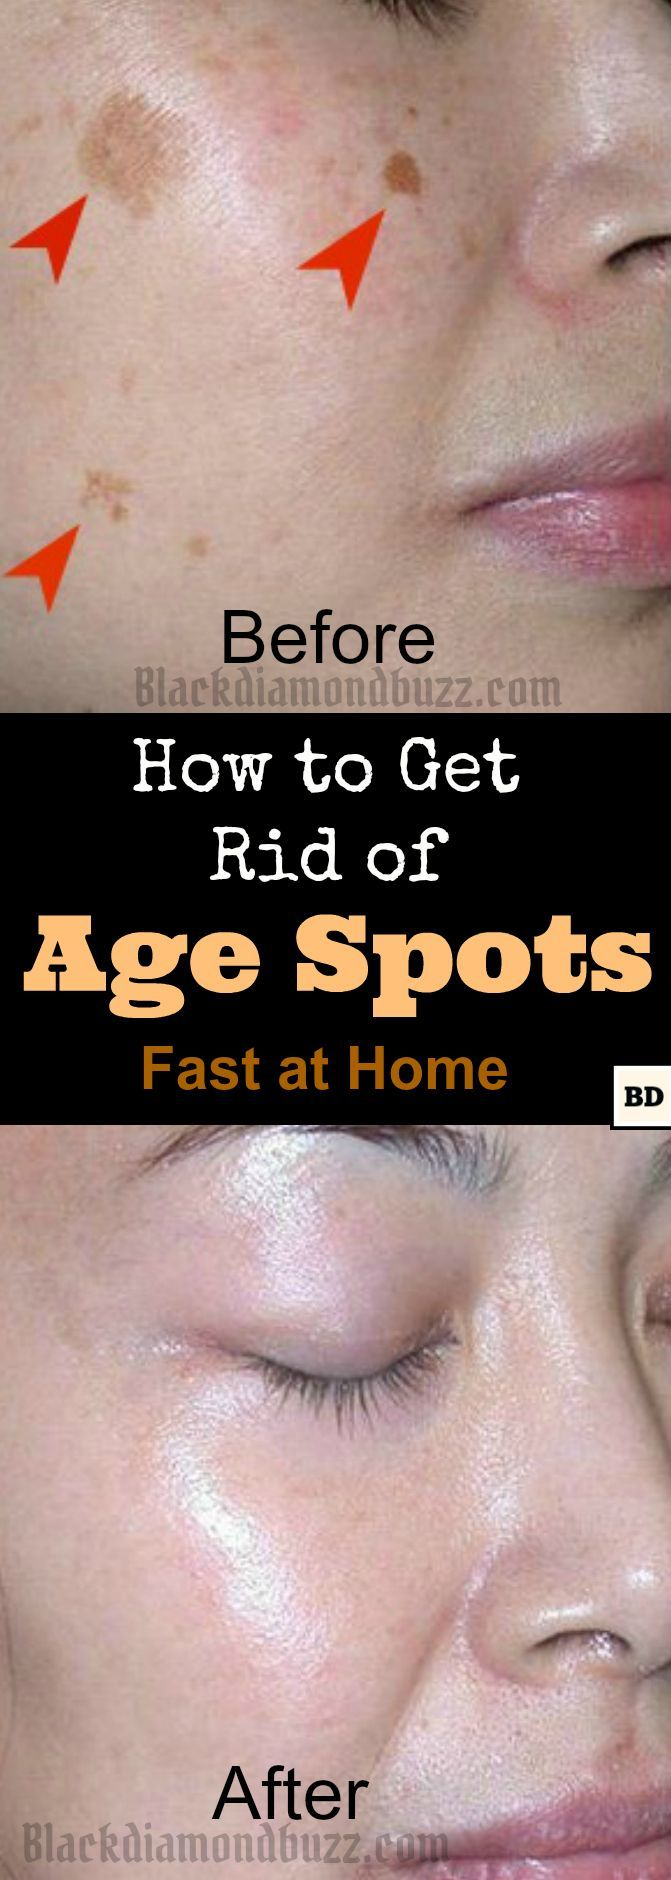 DIY age spots Removal - This How to Get Rid of Age Spots on Face fast at home, With all these active ingredient : apple cider vinegar ,baking soda,essential oils and lemon .   Essential oils Anti-aging Serum for dark age spots Removal    >3 drops of cypress essential oil  >14 drops of Frankincense Oil  >20 drops of Geranium essential oil  >4 tbsp of Rosehip seed oil  >3-4 tbsp of sweet almond oil